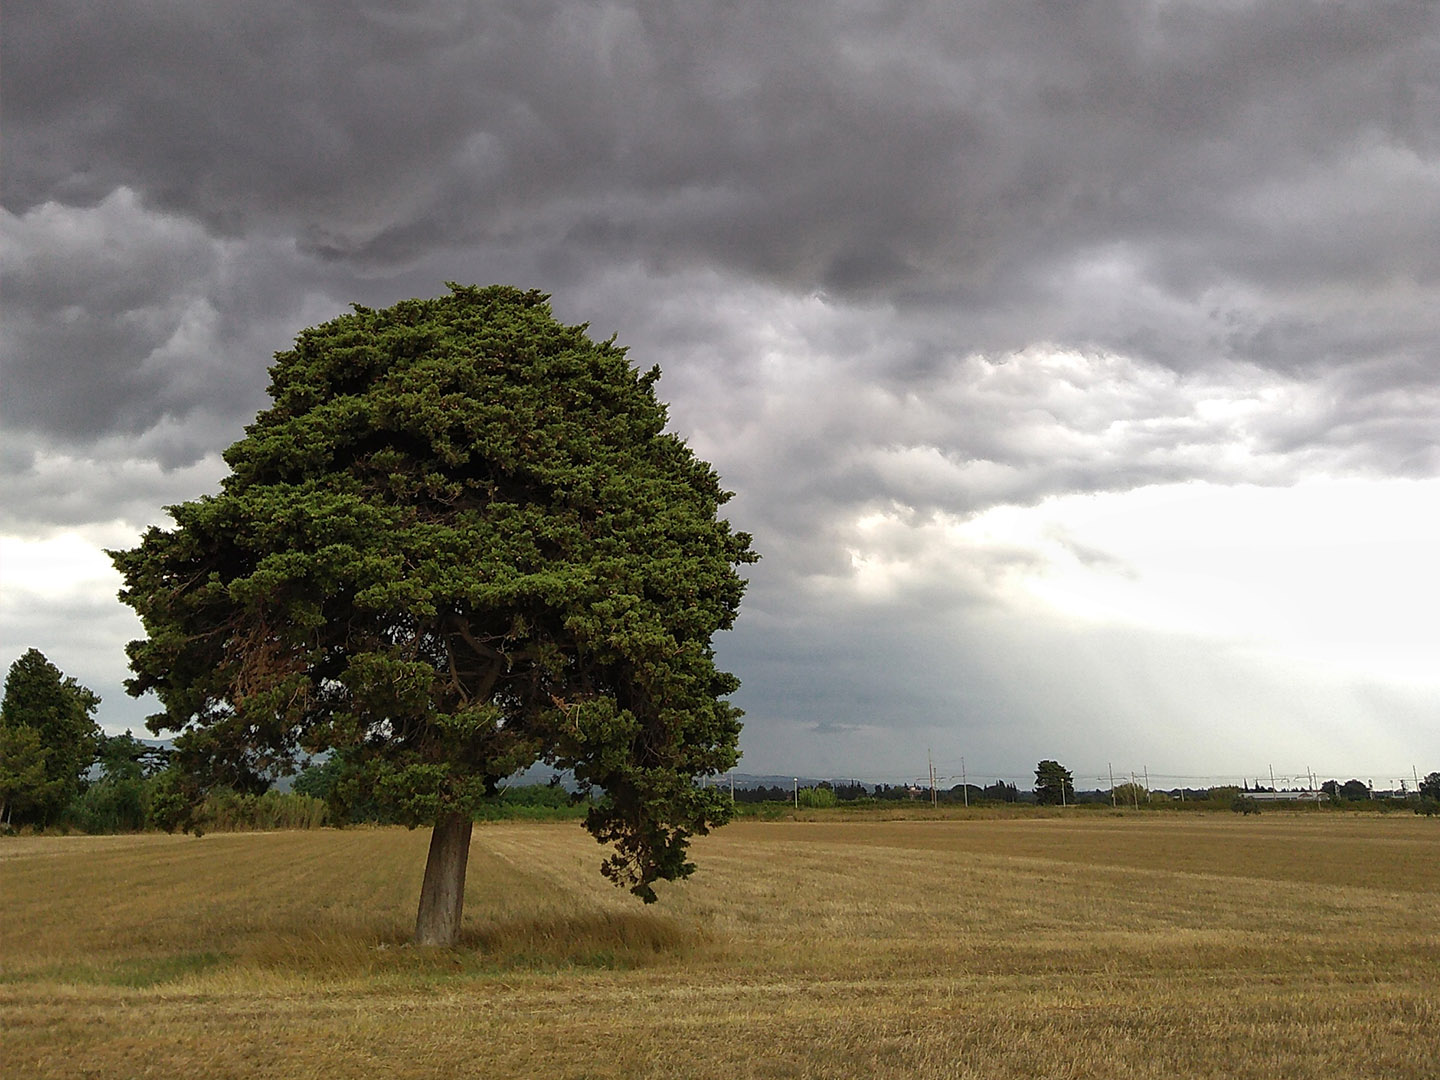 Categorie: Landscape & Nature; Photographer: FRANCO GRONCHI; Location: Vada, LI, Toscana, Italy - Waiting for the storm